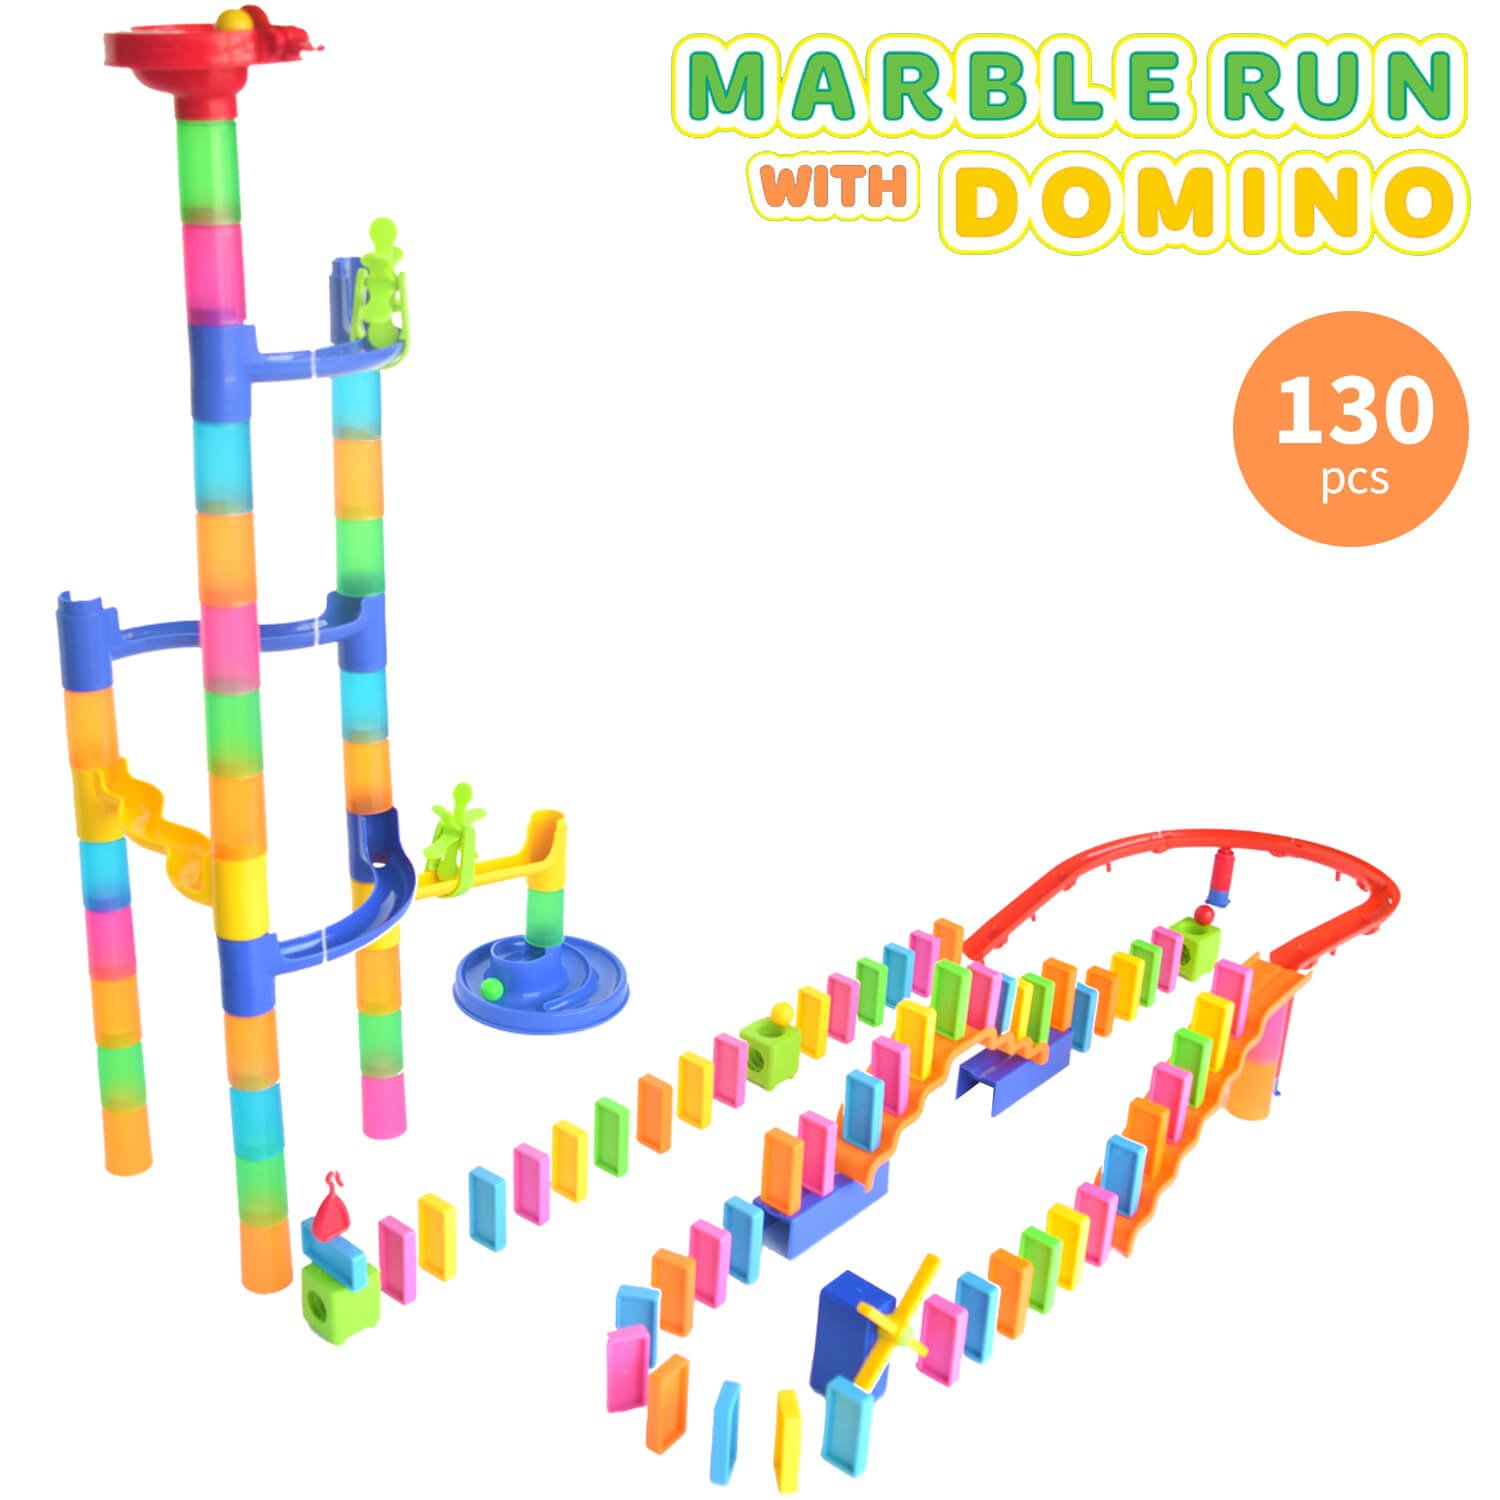 Marble Run Toy with Dominos - 130 Pcs Marble Maze STEM Learning Toy for Boys and Girls Age 4 5 6 Years Old | Builds Problem Solving and Fine Motor Skills